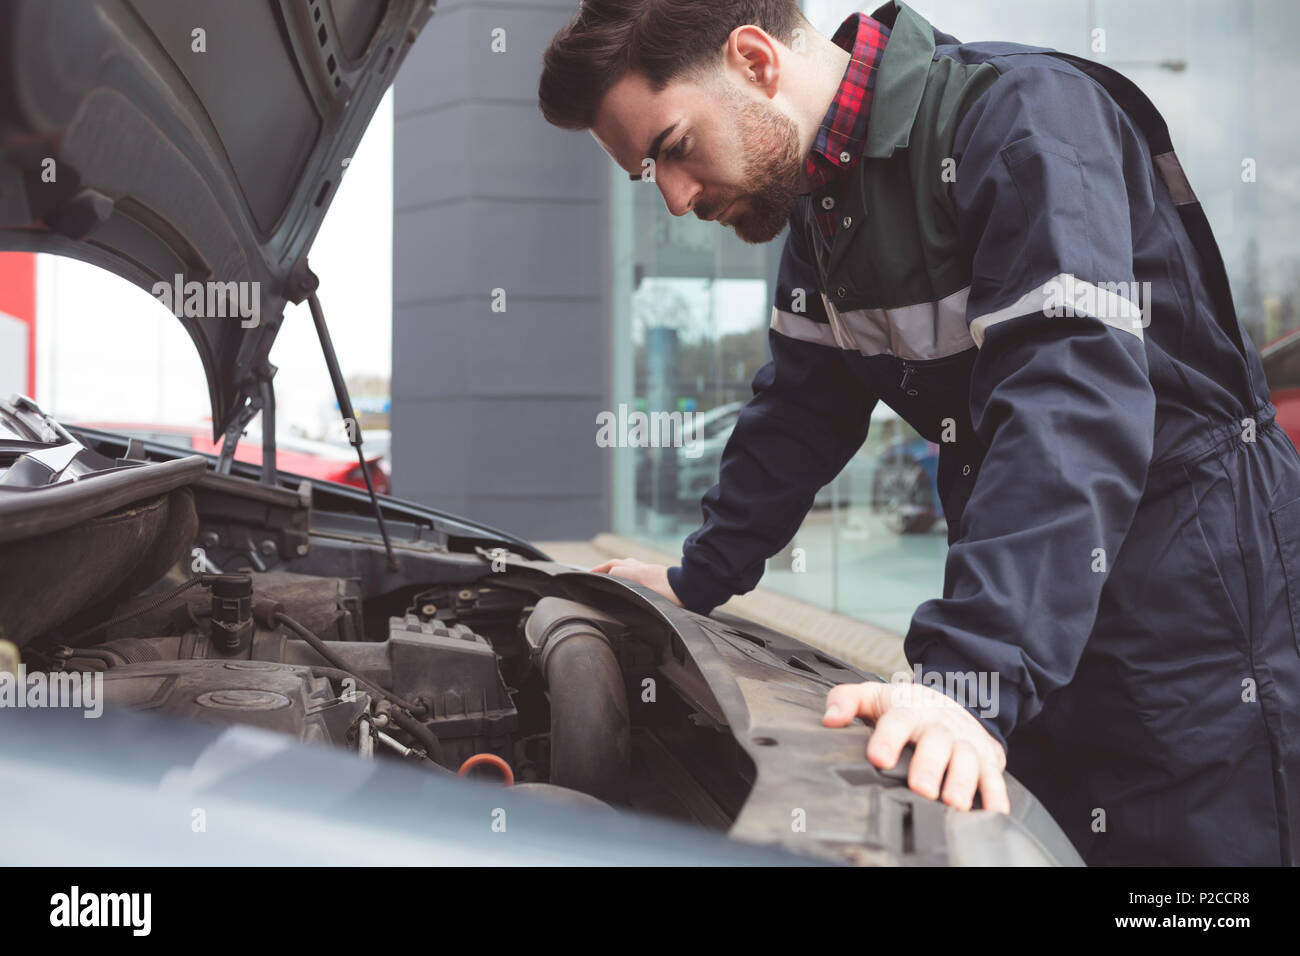 Male mechanic servicing car - Stock Image